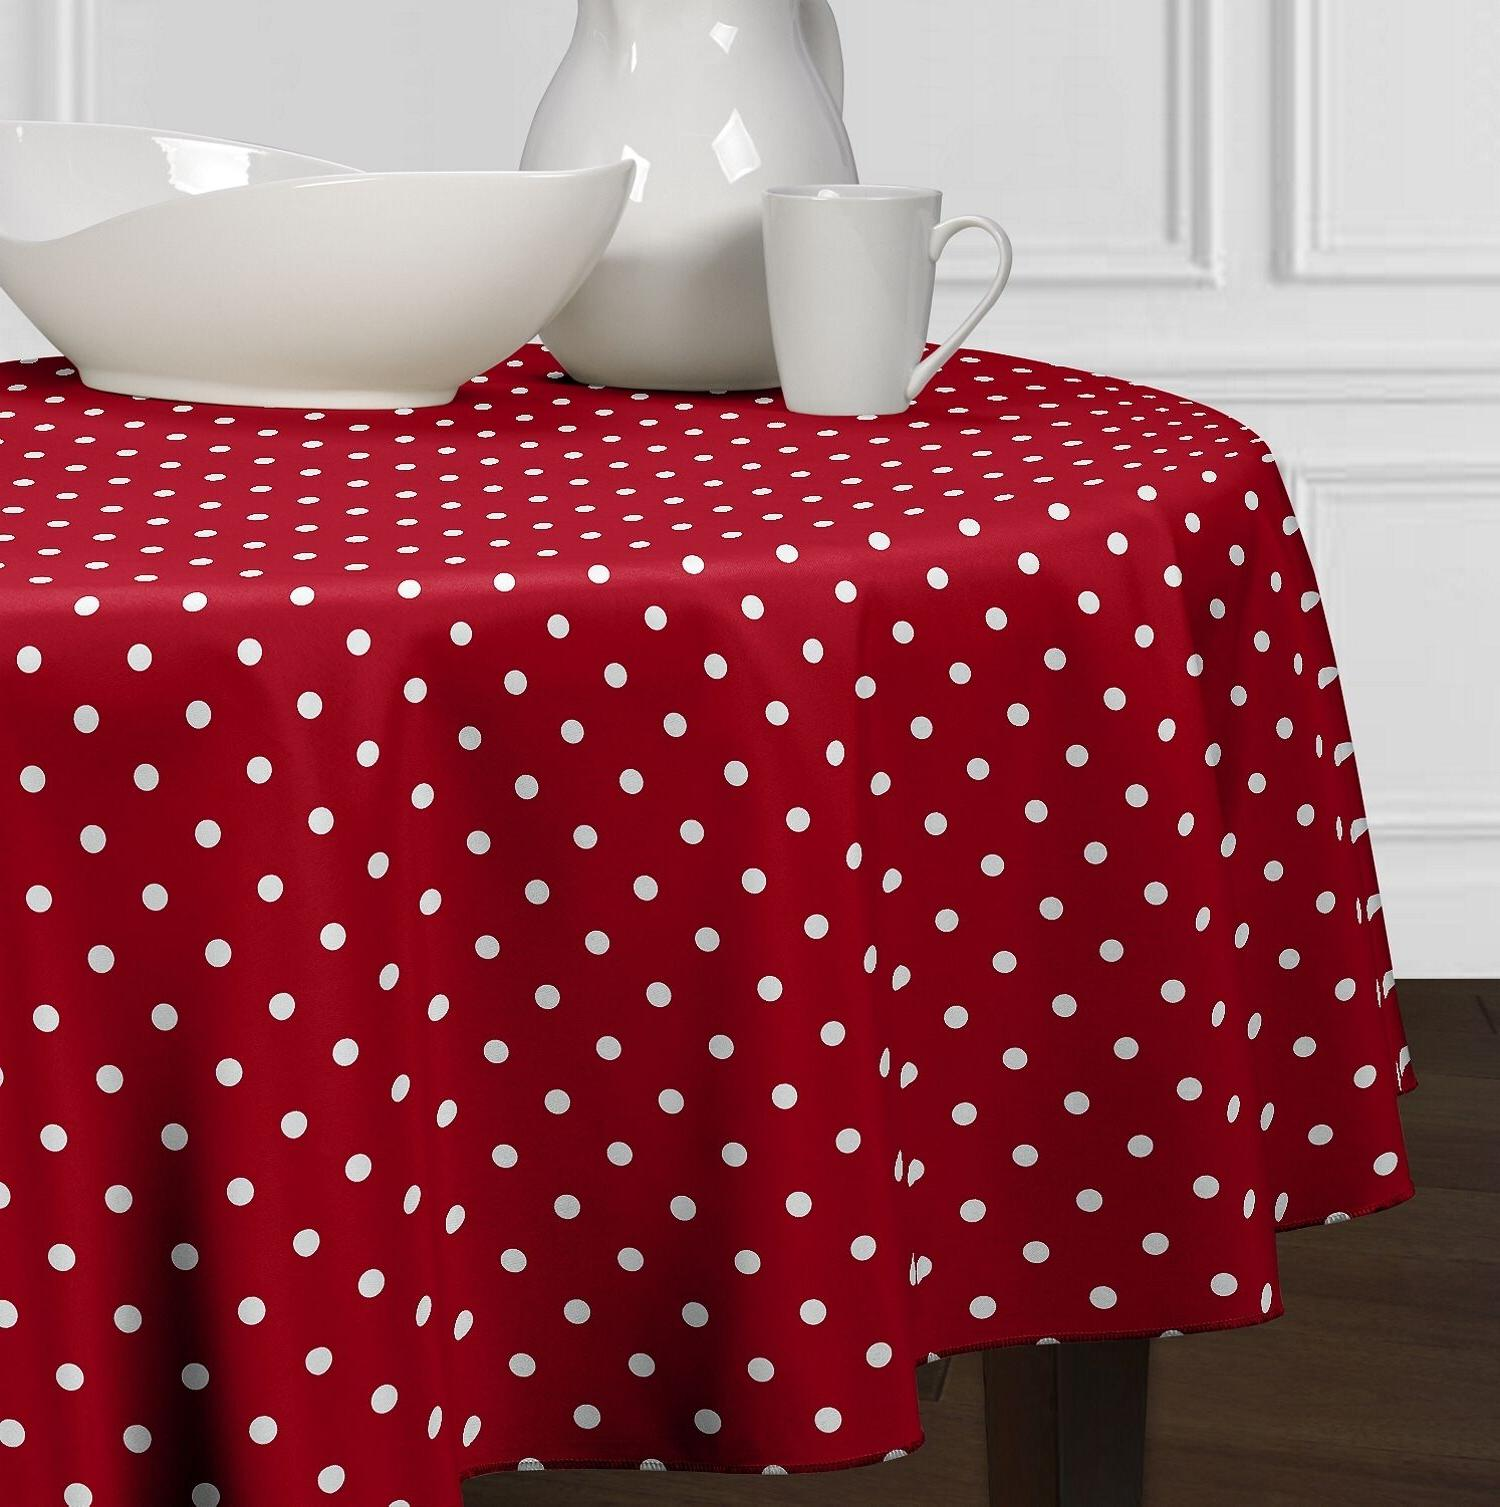 new red and white modern polka dot